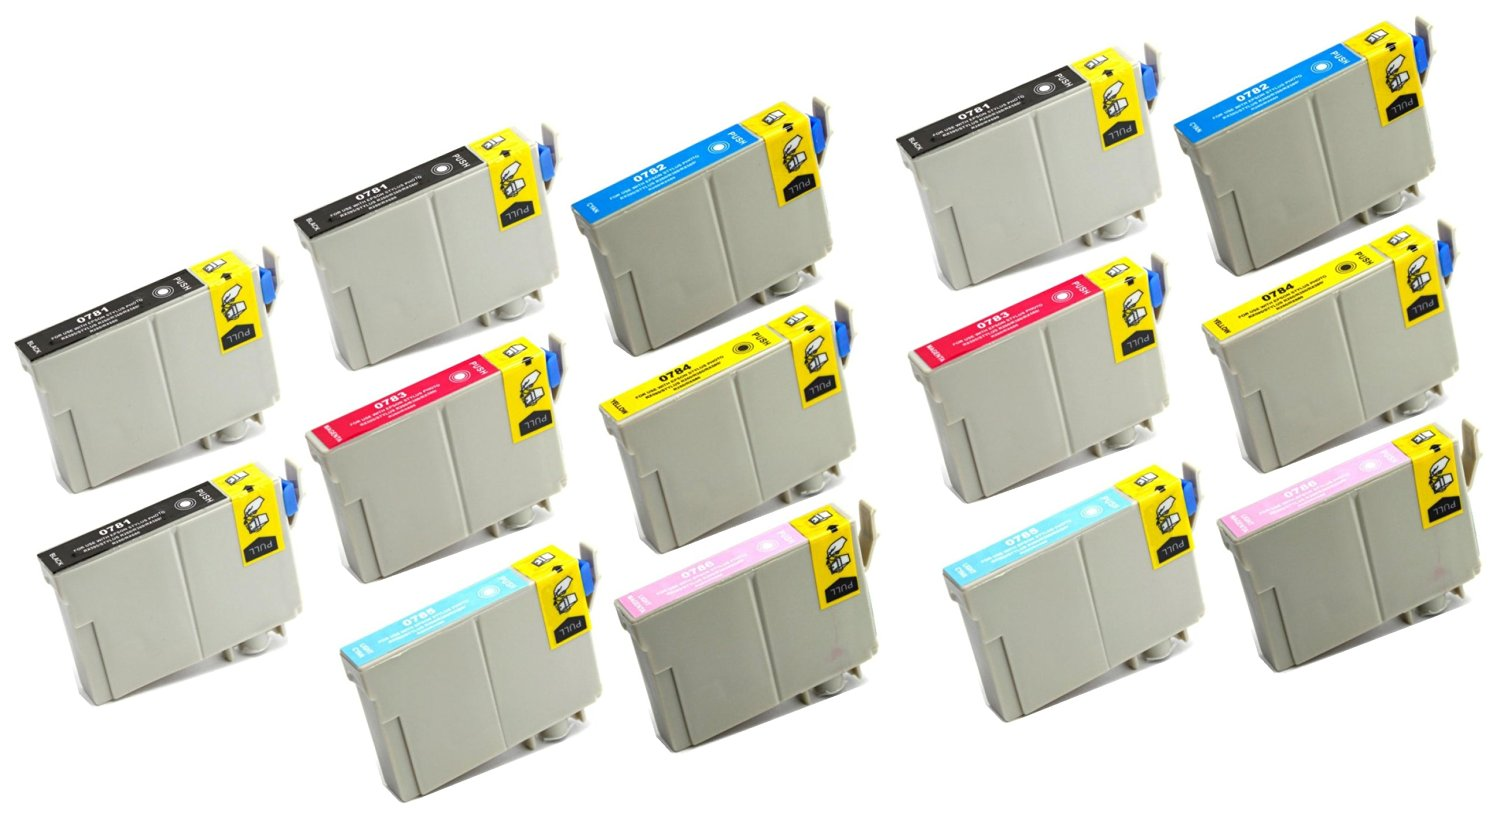 14 Pack Remanufactured Inkjet Cartridges for Epson T078 #78 T078120 T078220 T078320 T078420 T078520 T078620 Compatible With Epson Artisan 50, Stylus Photo R260, Stylus Photo R280, Stylus Photo R380, Stylus Photo RX580, Stylus Photo RX595, Stylus Photo RX680 (4 Black, 2 Cyan, 2 Magenta, 2 Yellow, 2